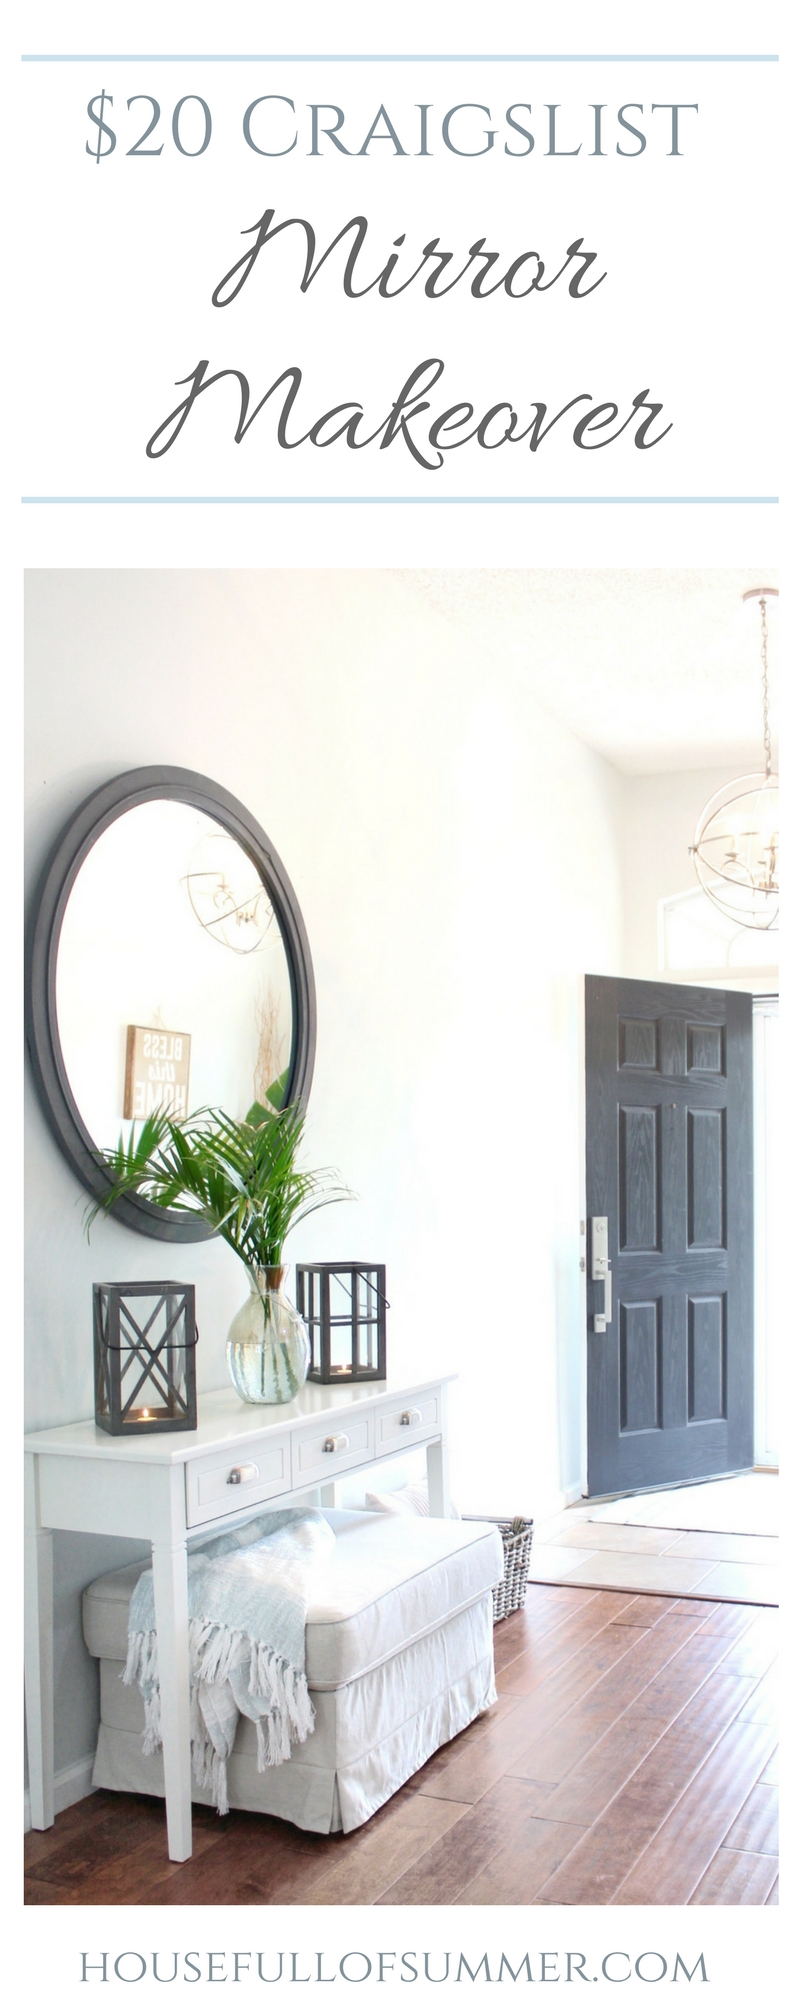 $20 Craigslist Mirror Makeover - House Full of Summer on the blog. DIY, home decor ideas, chalk paint, decorating on a budget, coastal interior